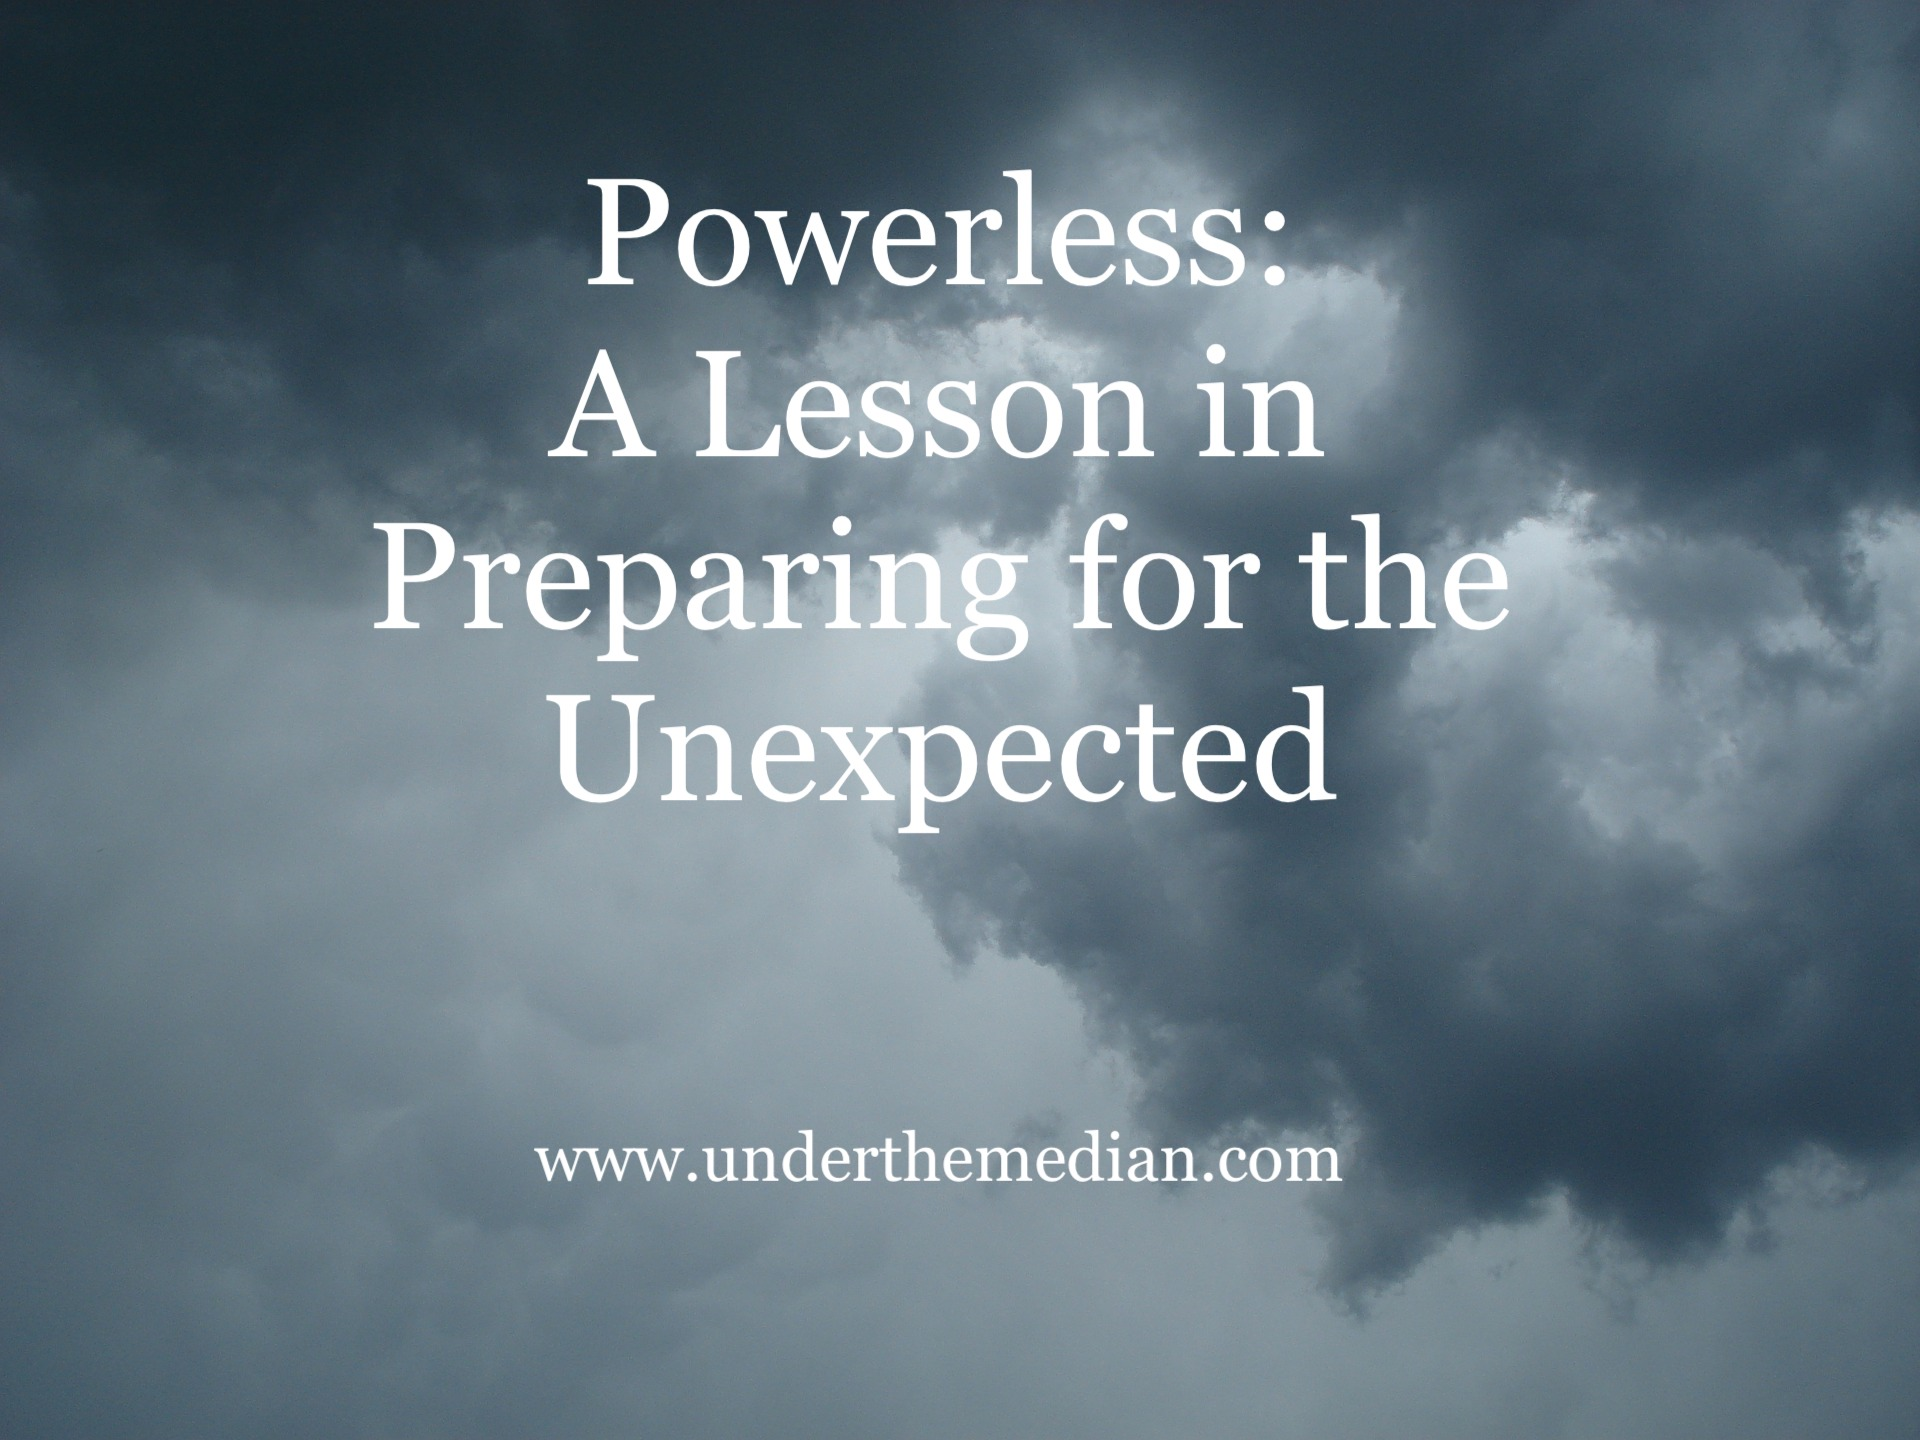 Powerless: A Lesson In Preparing for the Unexpected